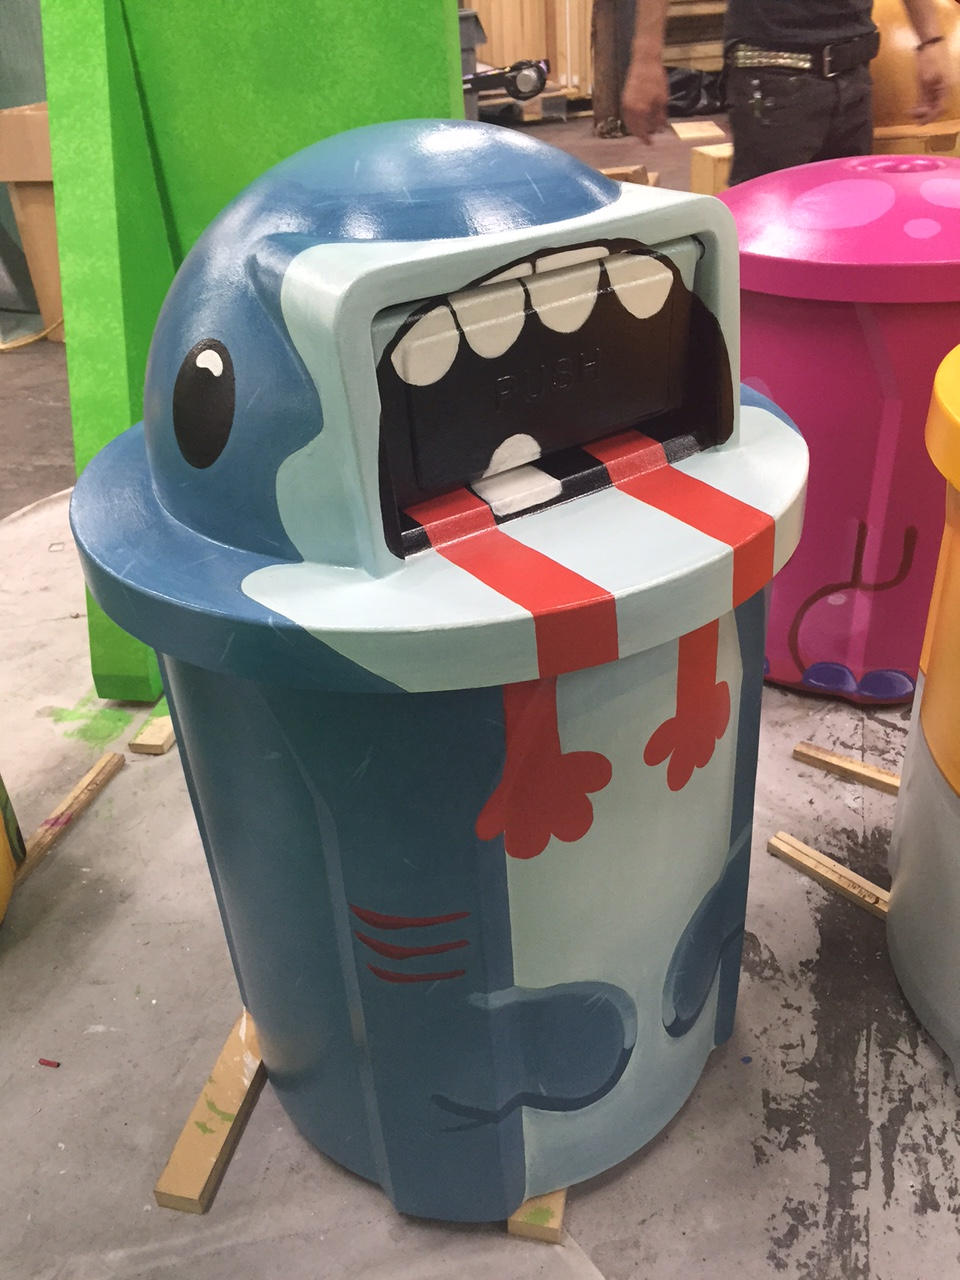 Shark trash can for Snapchat